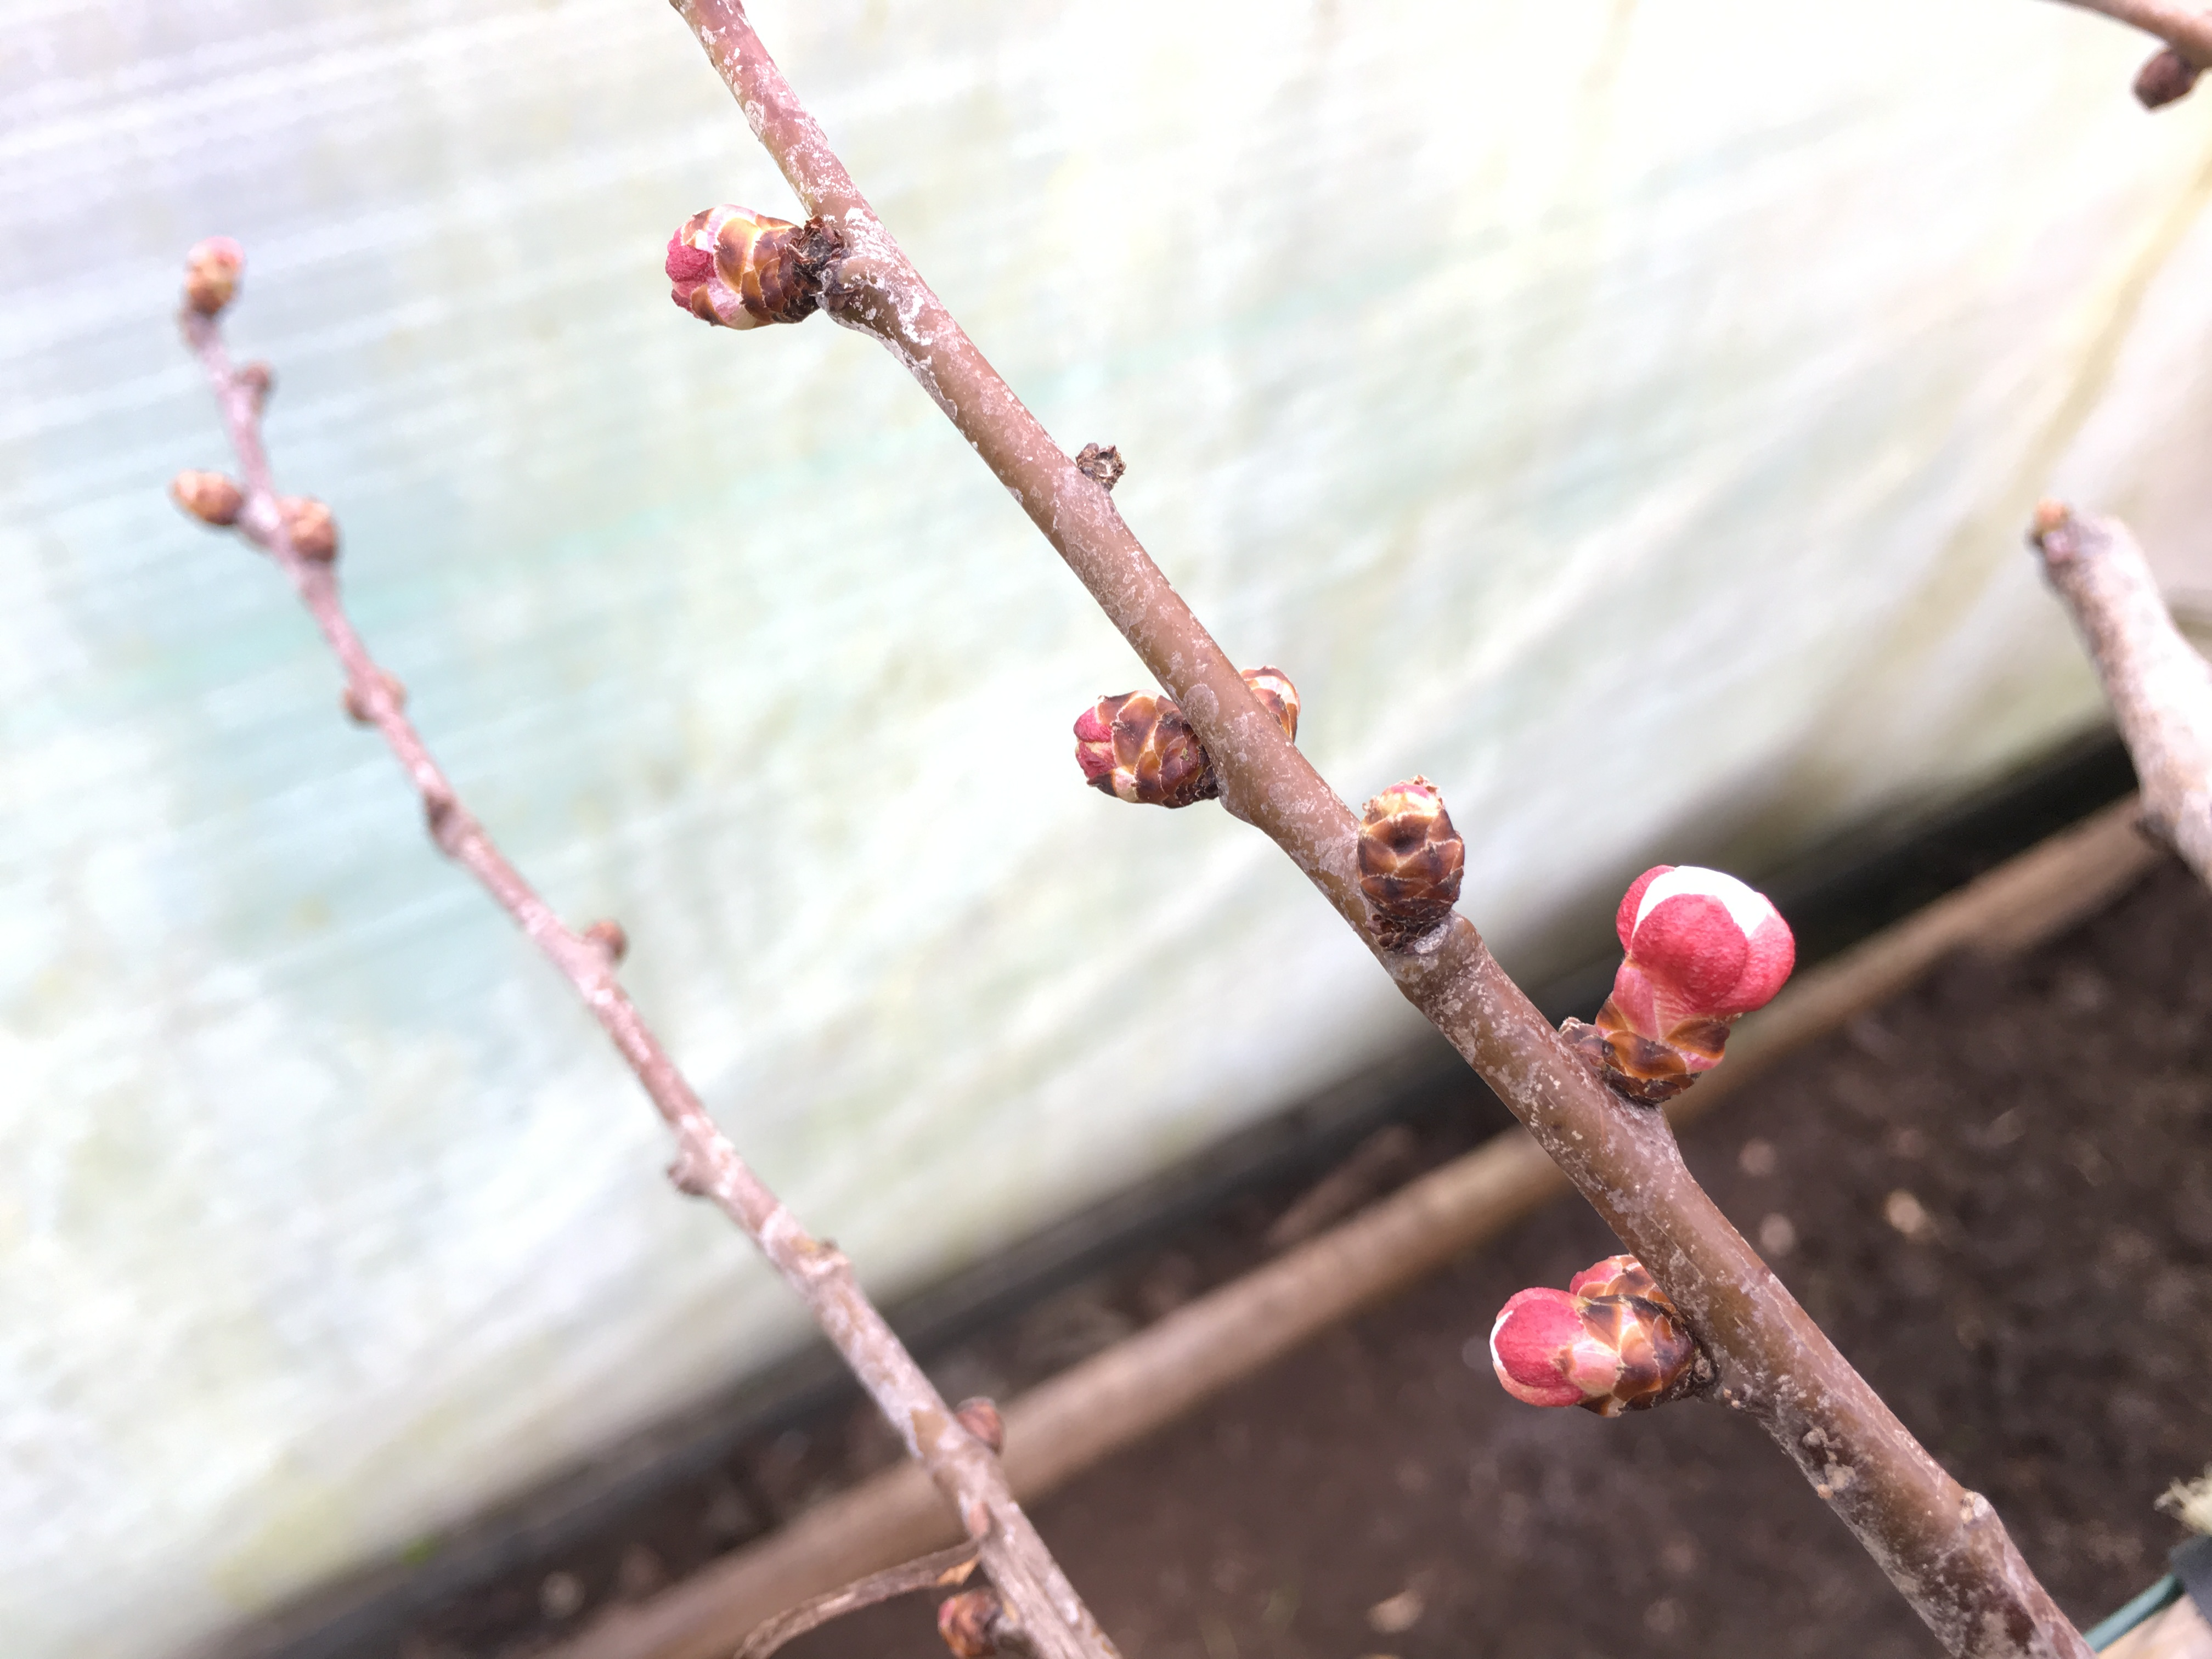 Fruit buds on the Bredase apricot